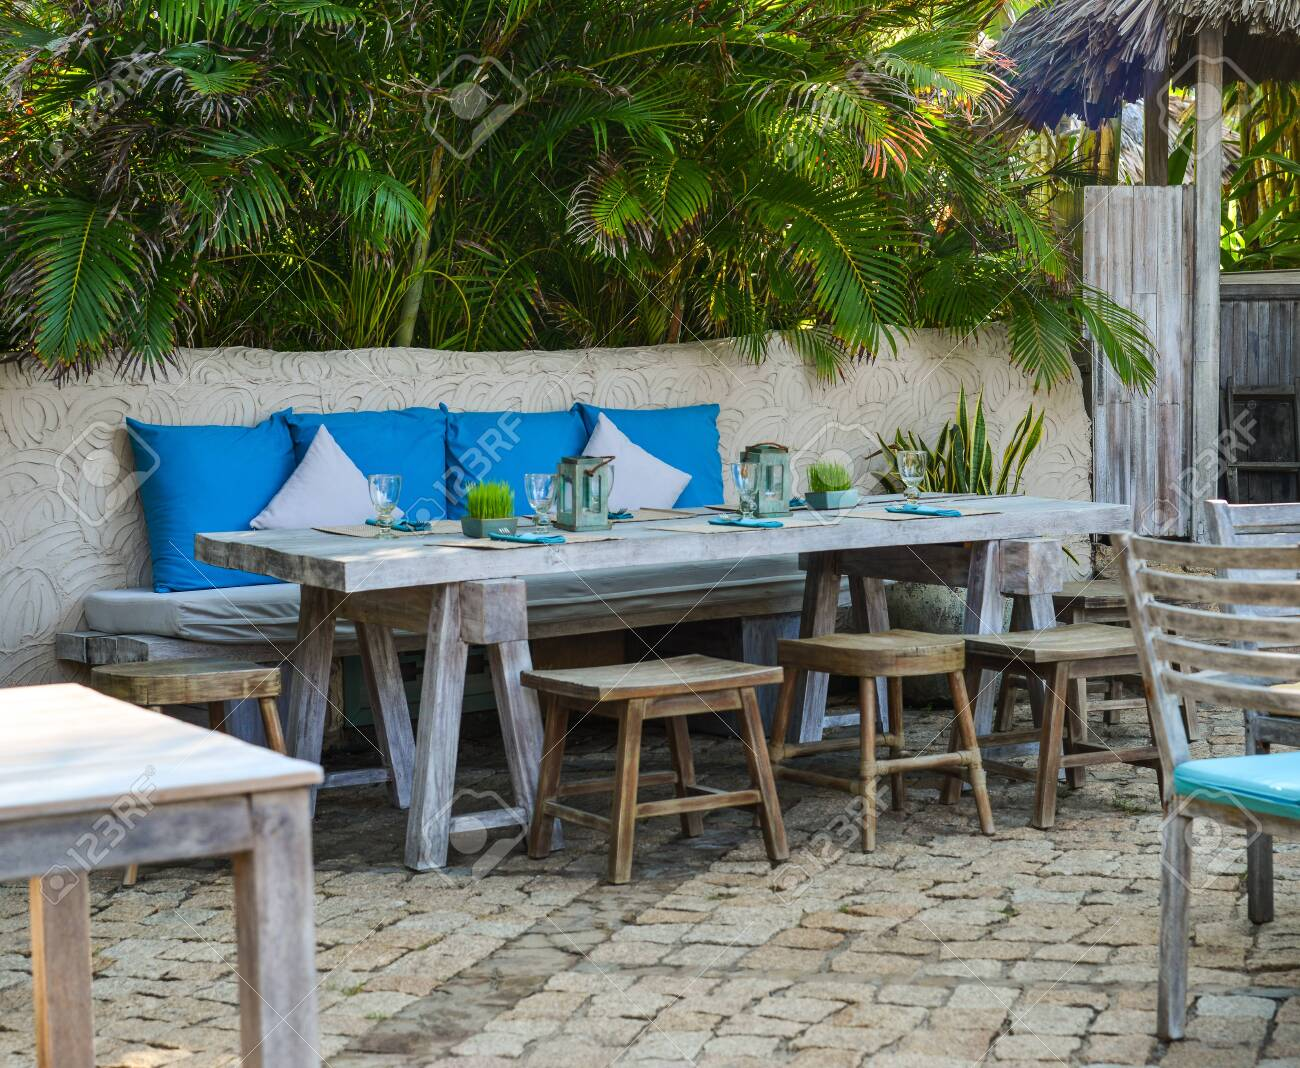 Outdoor Furniture In The Luxury Restaurant Tables And Chairs Stock Photo Picture And Royalty Free Image Image 124279364